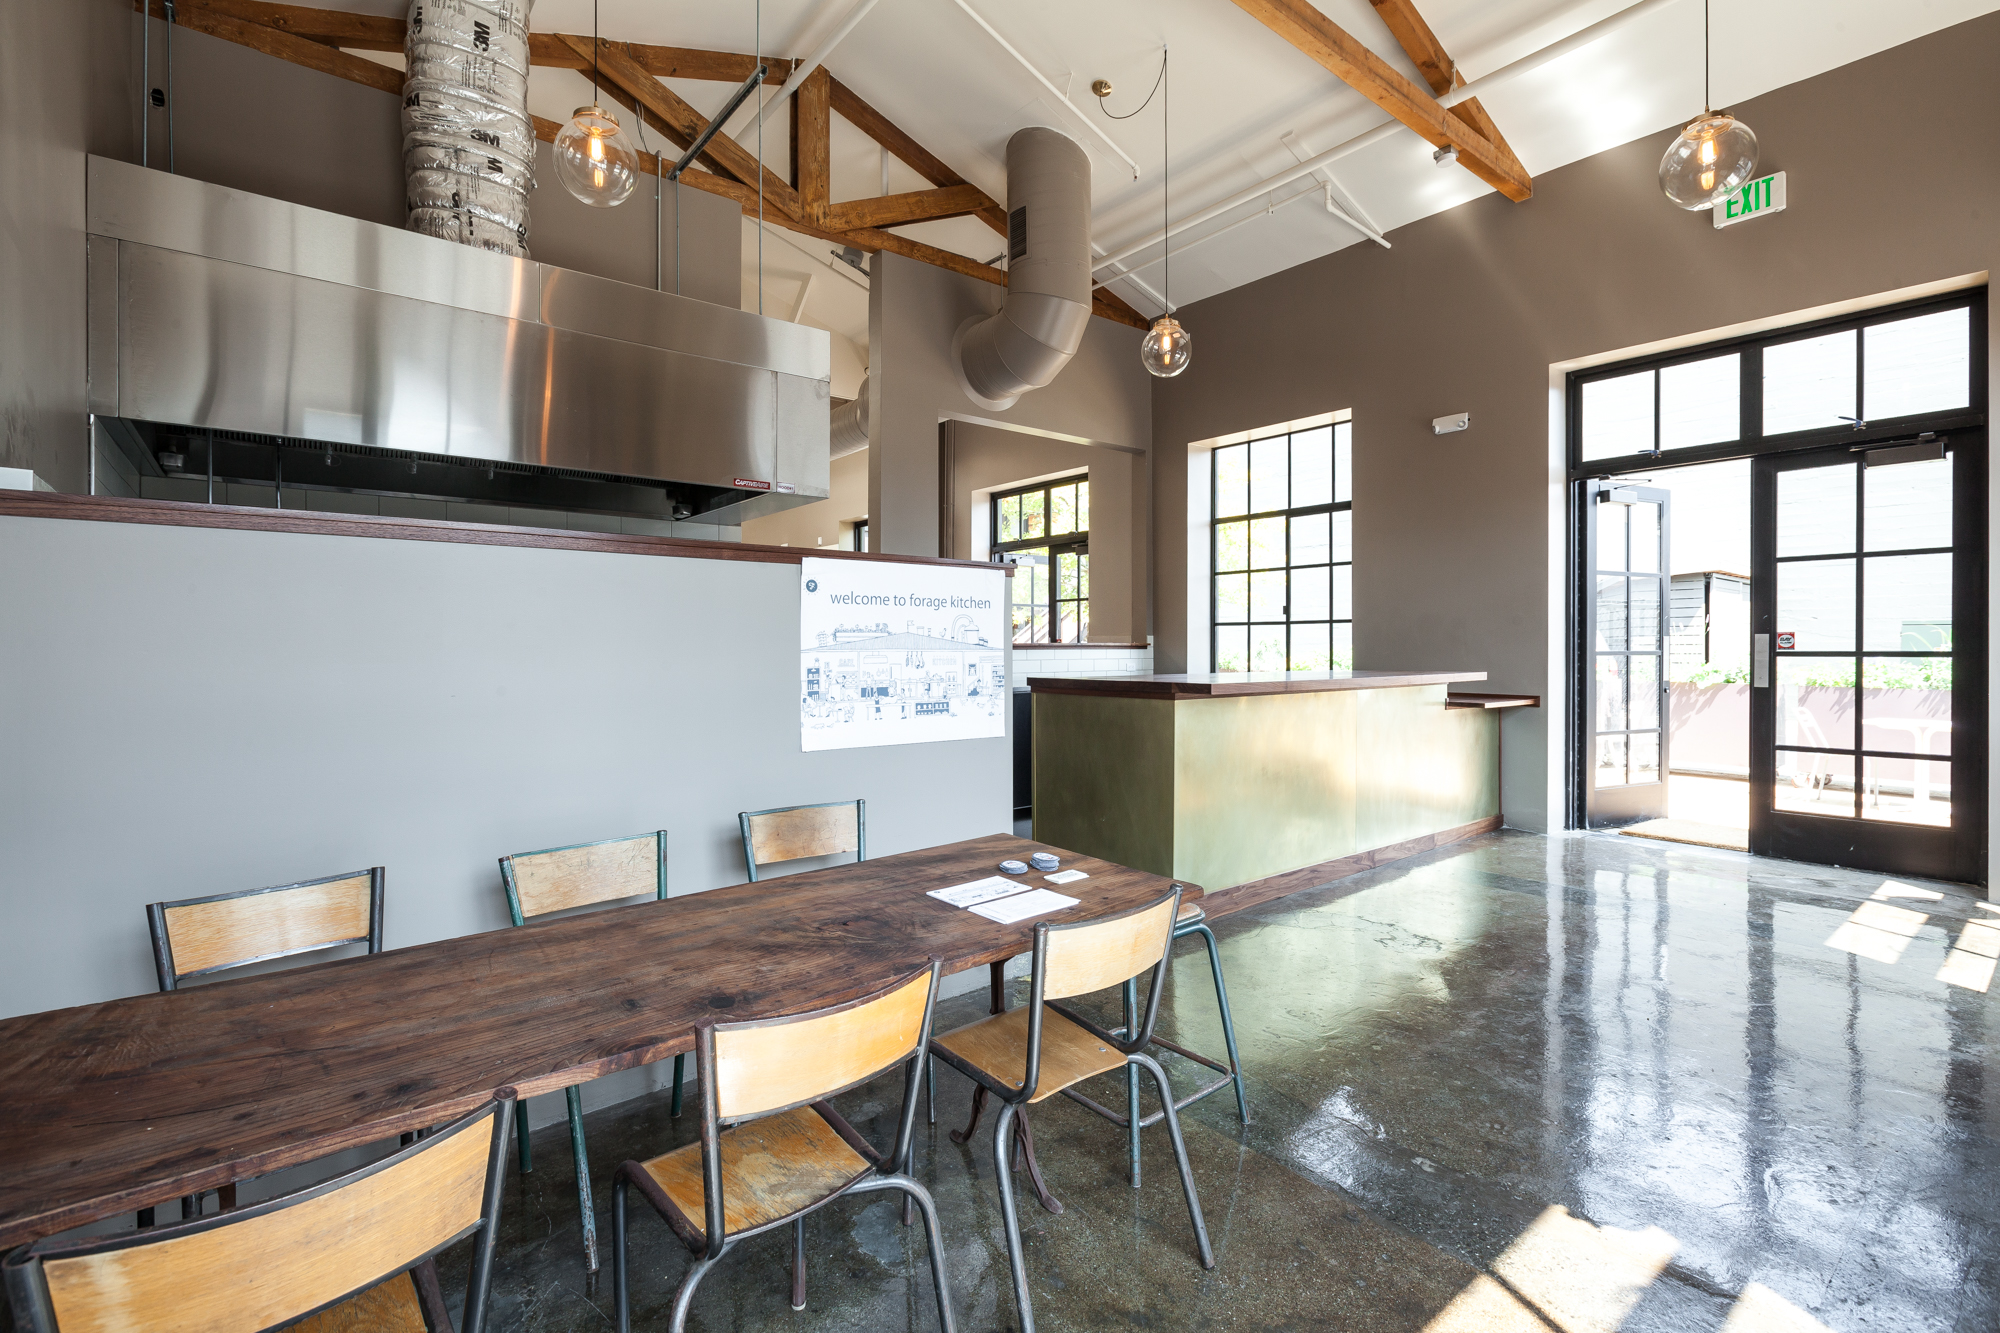 inside forage kitchen oaklands new incubator for food concepts - Kitchen Incubator